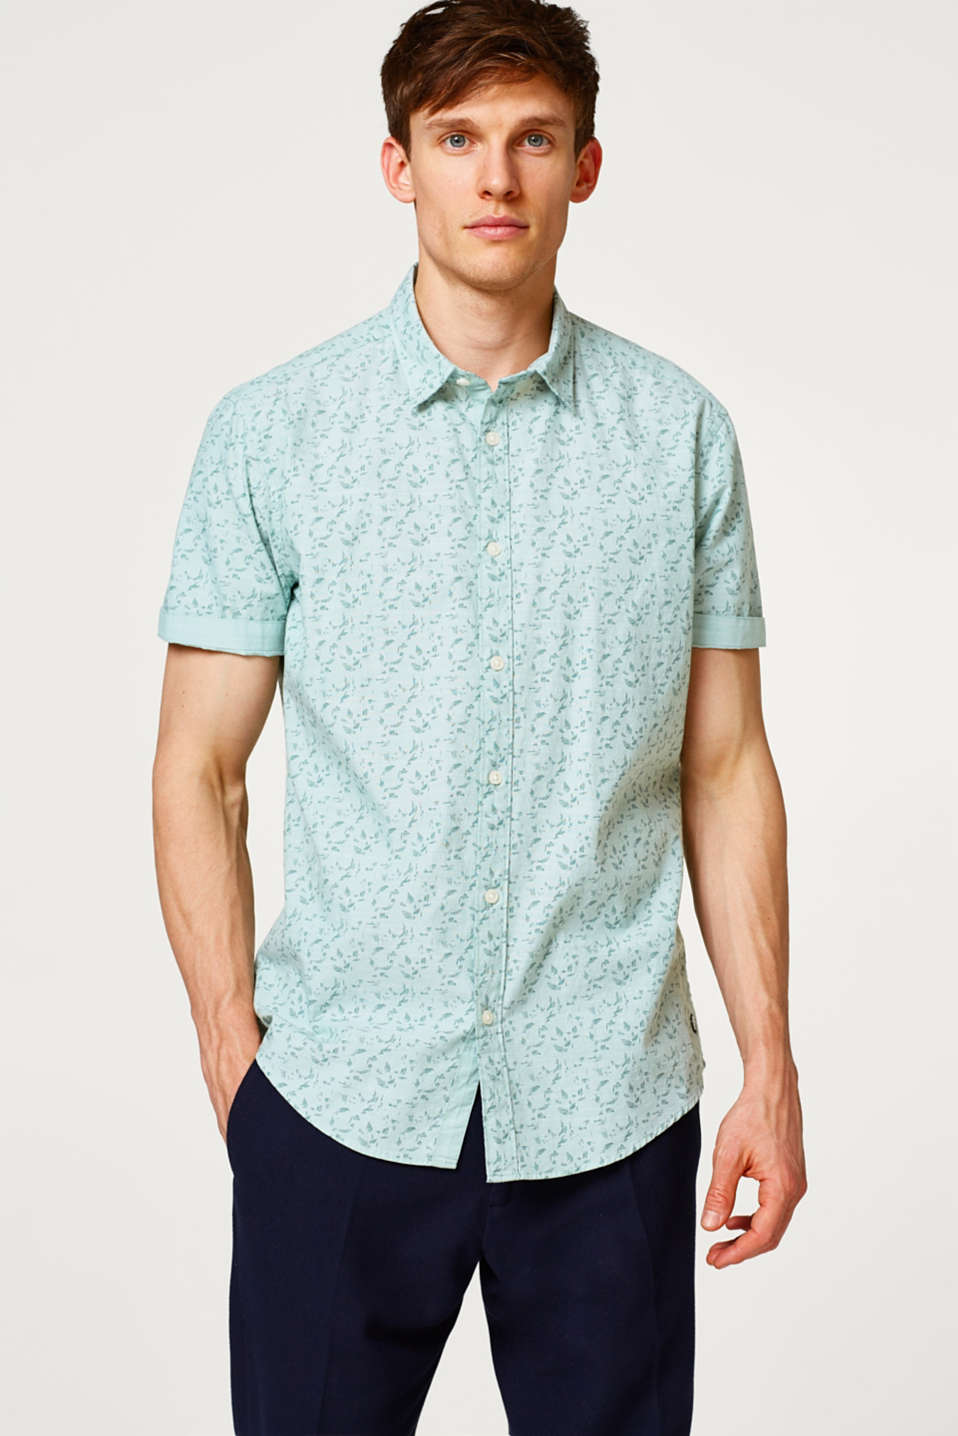 Esprit - Cotton short sleeve shirt with a floral print